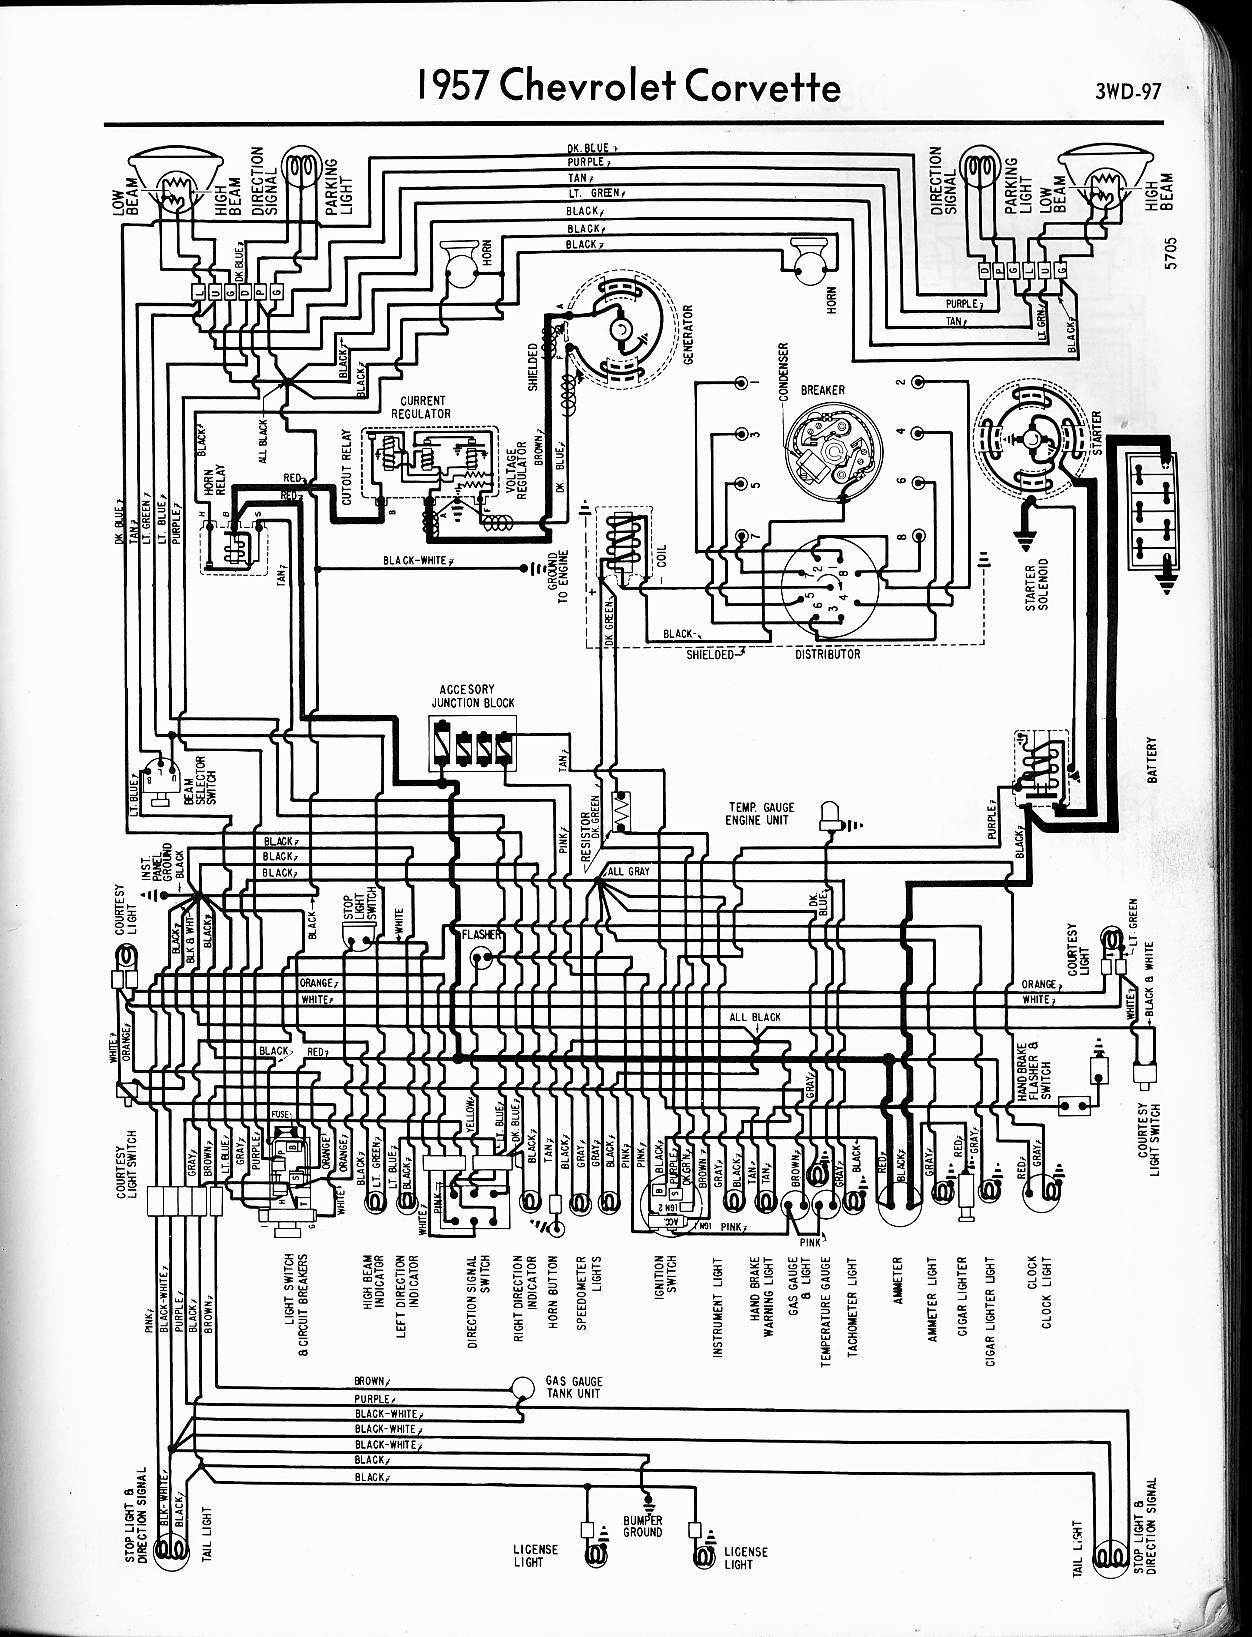 57 chevy wiring harness wiring schematic diagram Chevy Transmission Diagram 57 65 chevy wiring diagrams 55 chevy wiring harness 1957 corvette